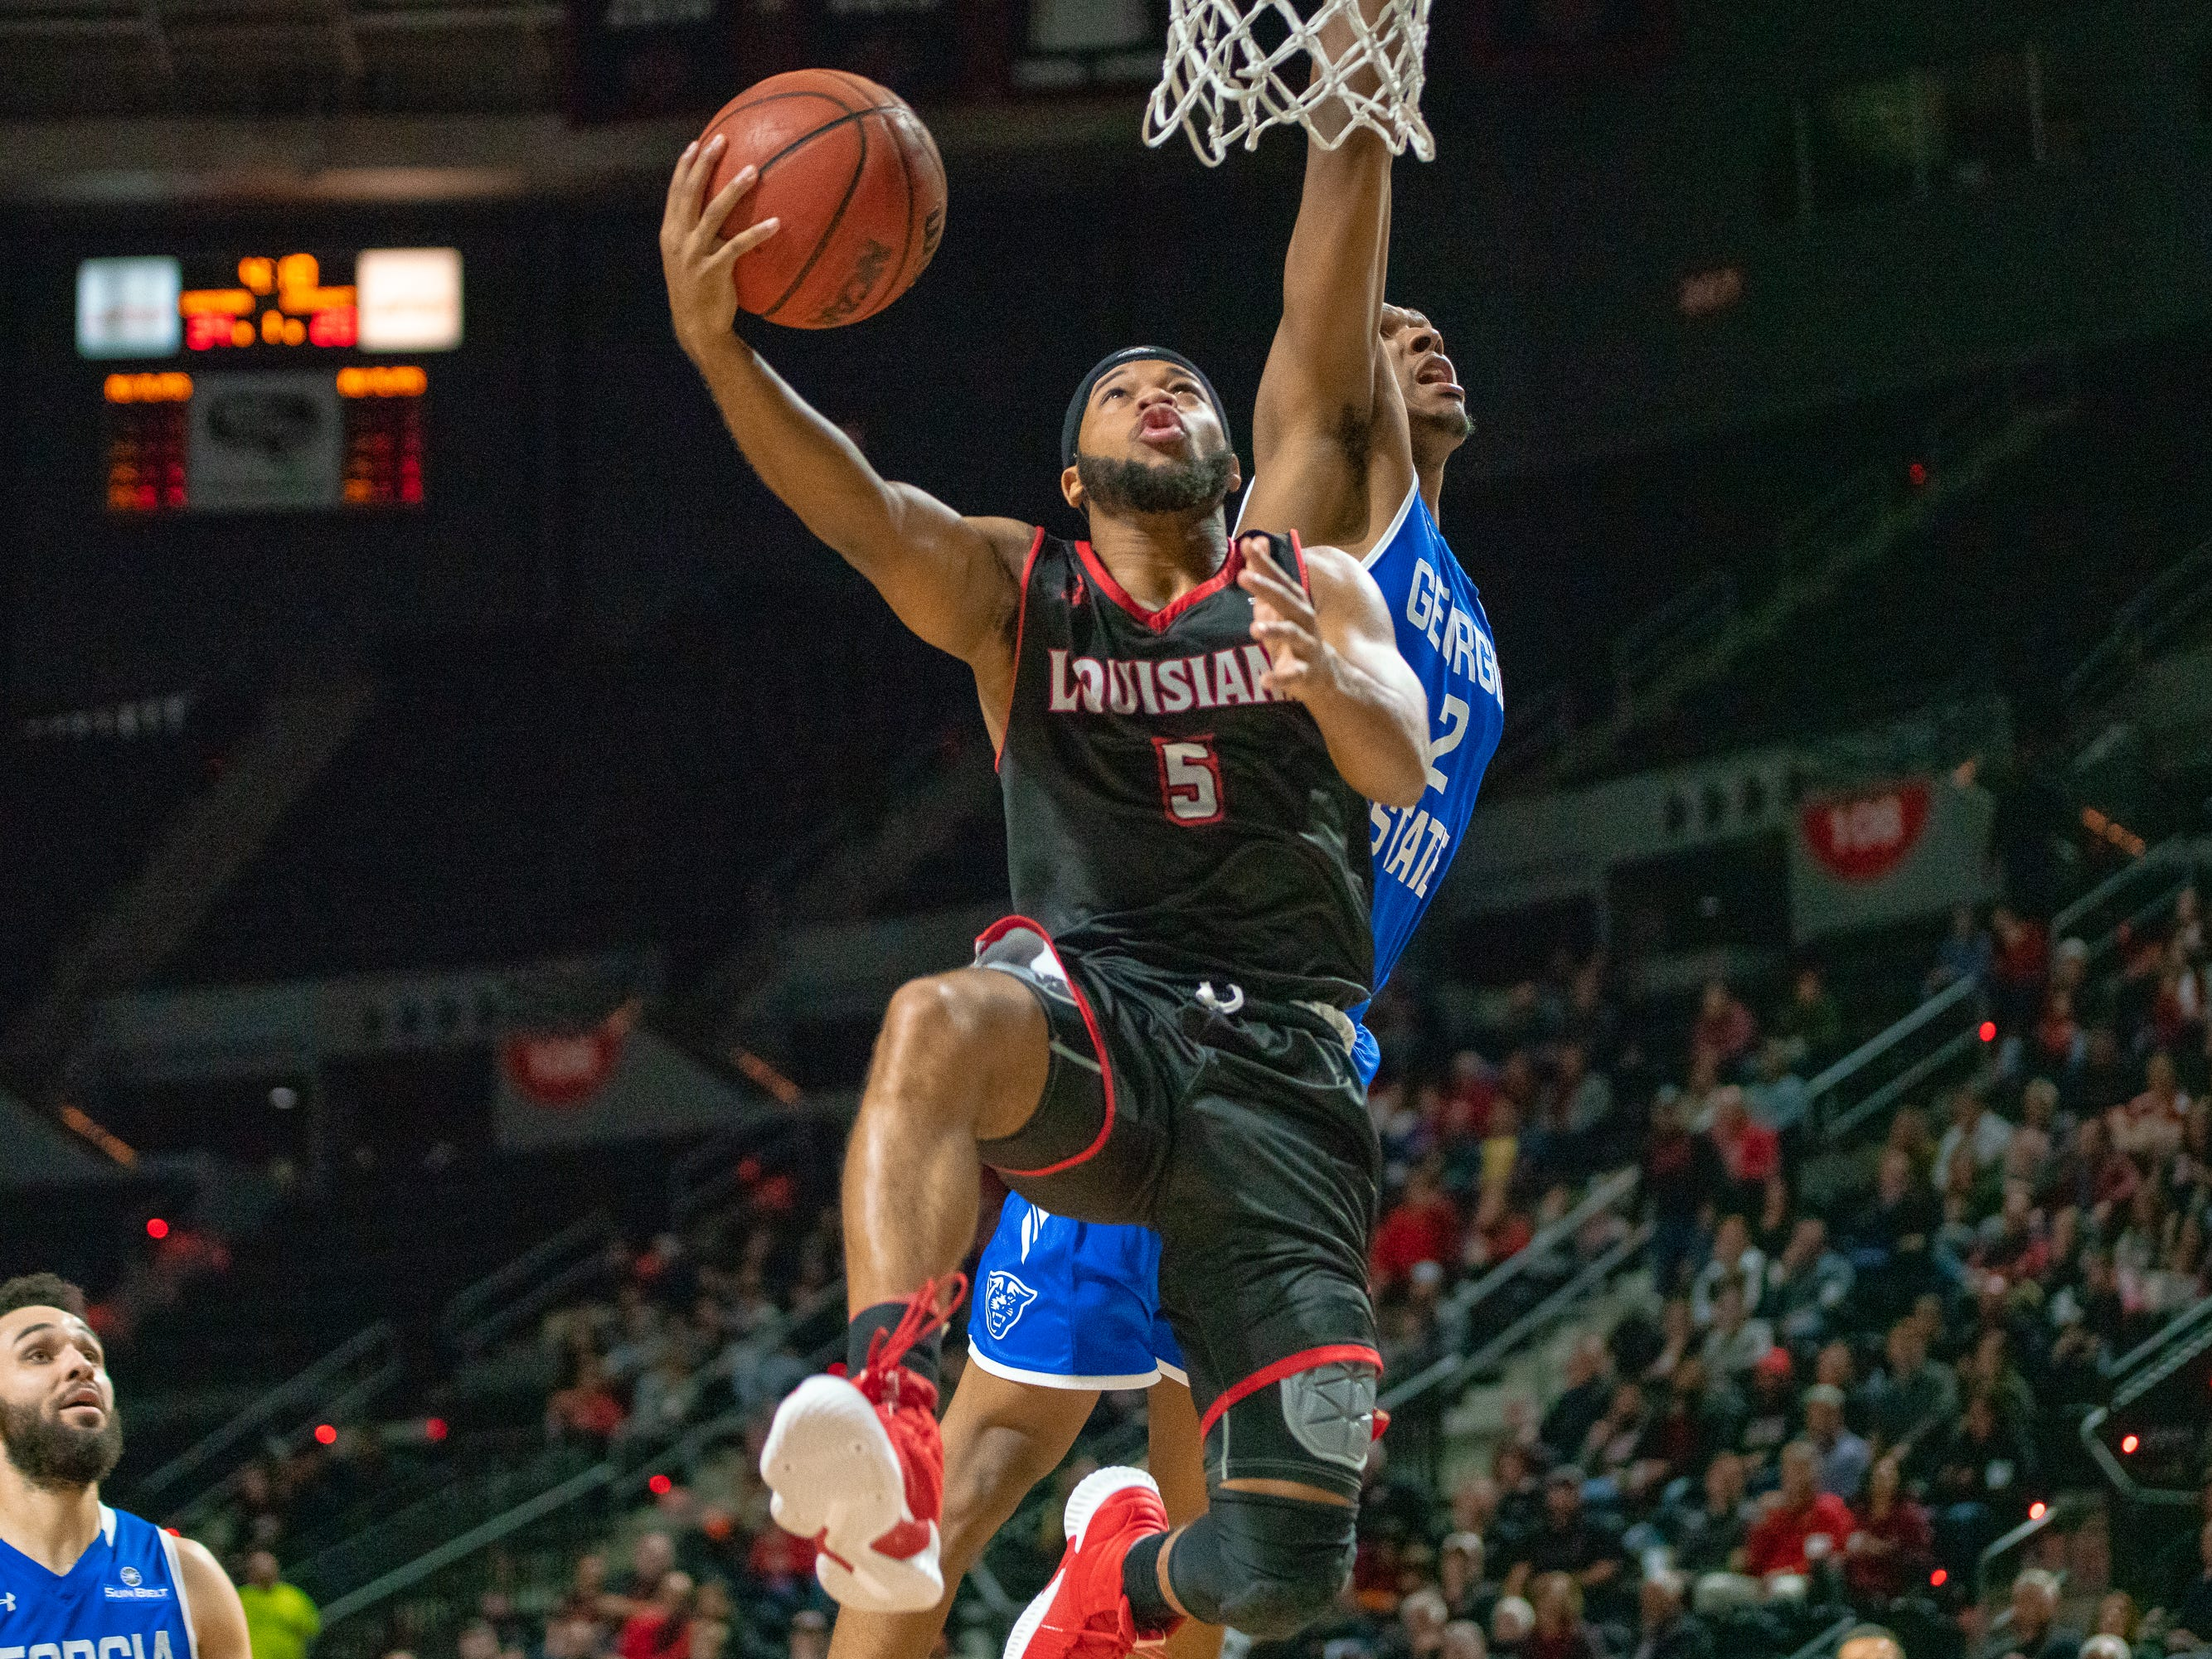 UL's Trajan Wesley scores a layup as the Ragin' Cajuns take on the Georgia State Panthers at the Cajundome on Feb. 8, 2019.